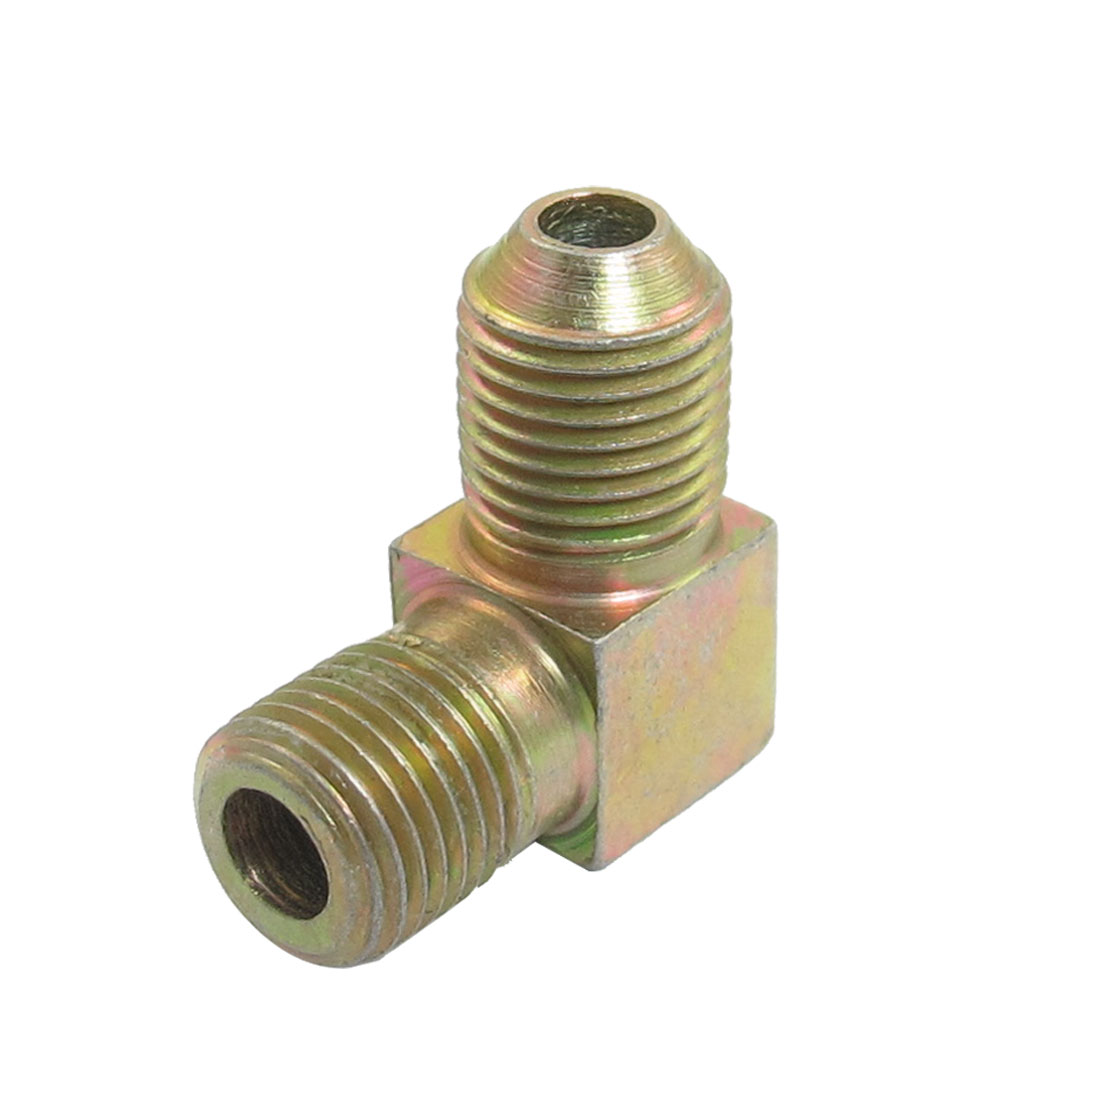 1/8 to 1/8 Male Thread Elbow Brass Connector Water Pipe Fitting